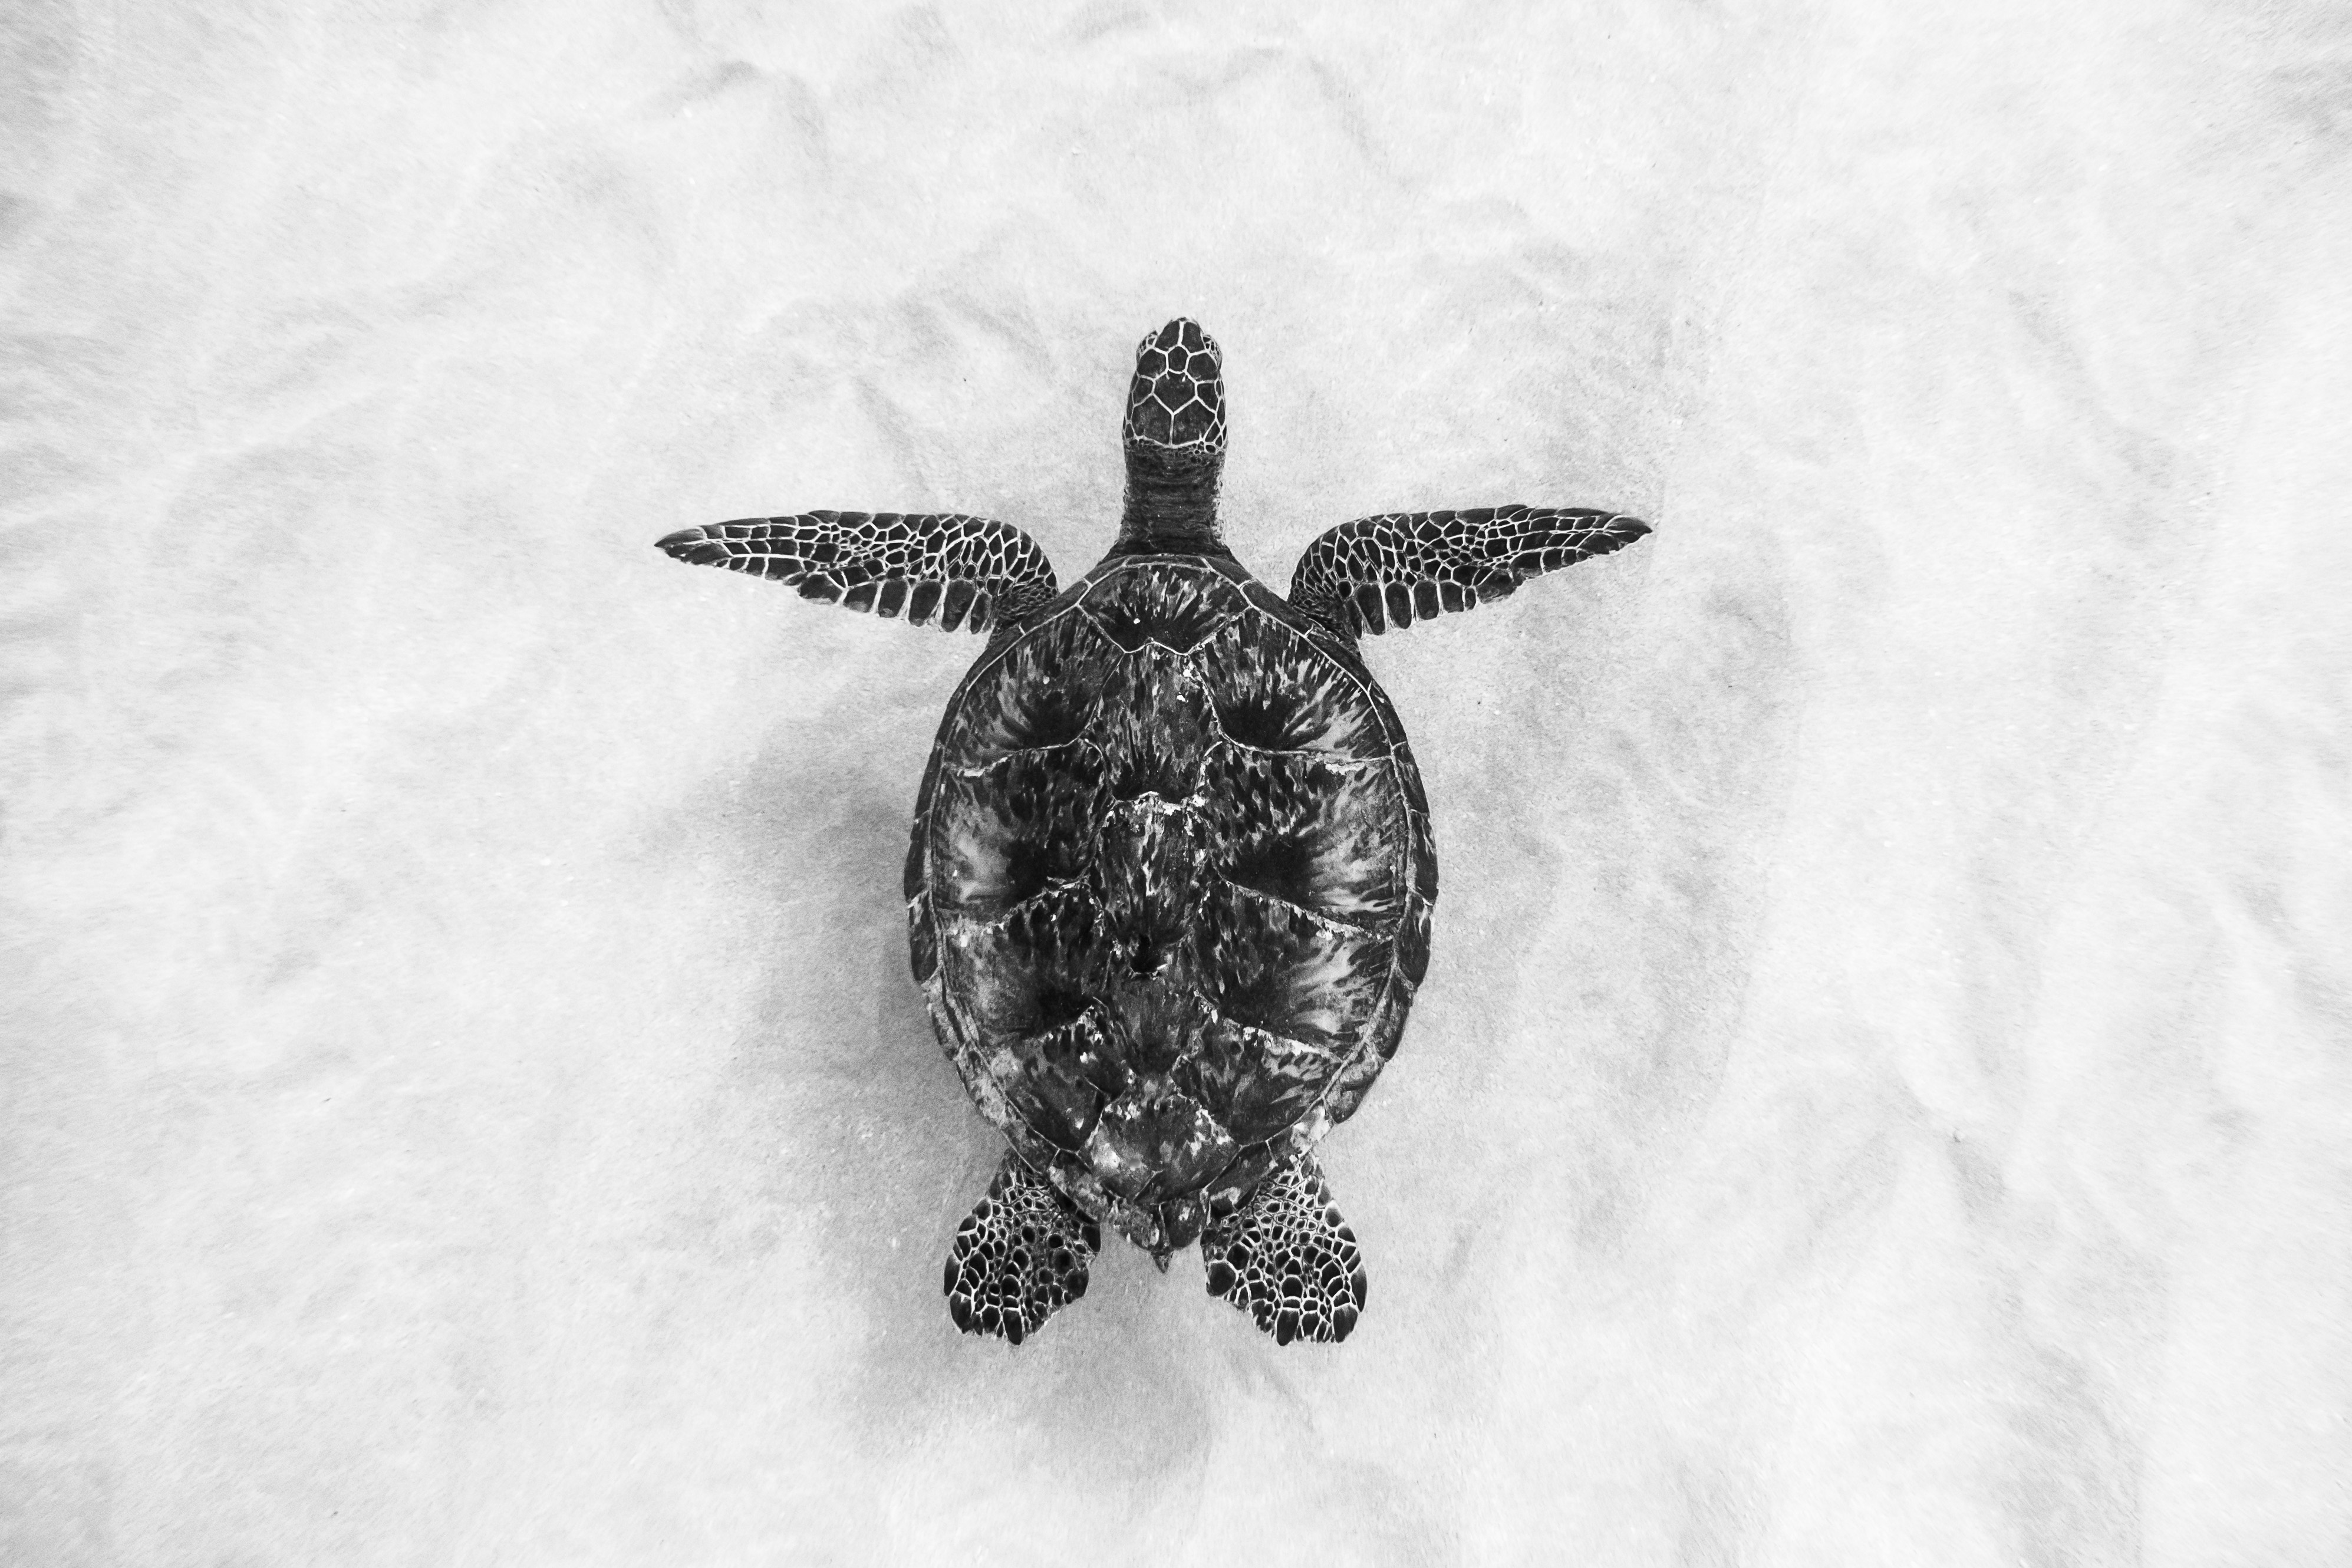 North Shore Hawaii Sea Turtle Black and White by Zach Stadler